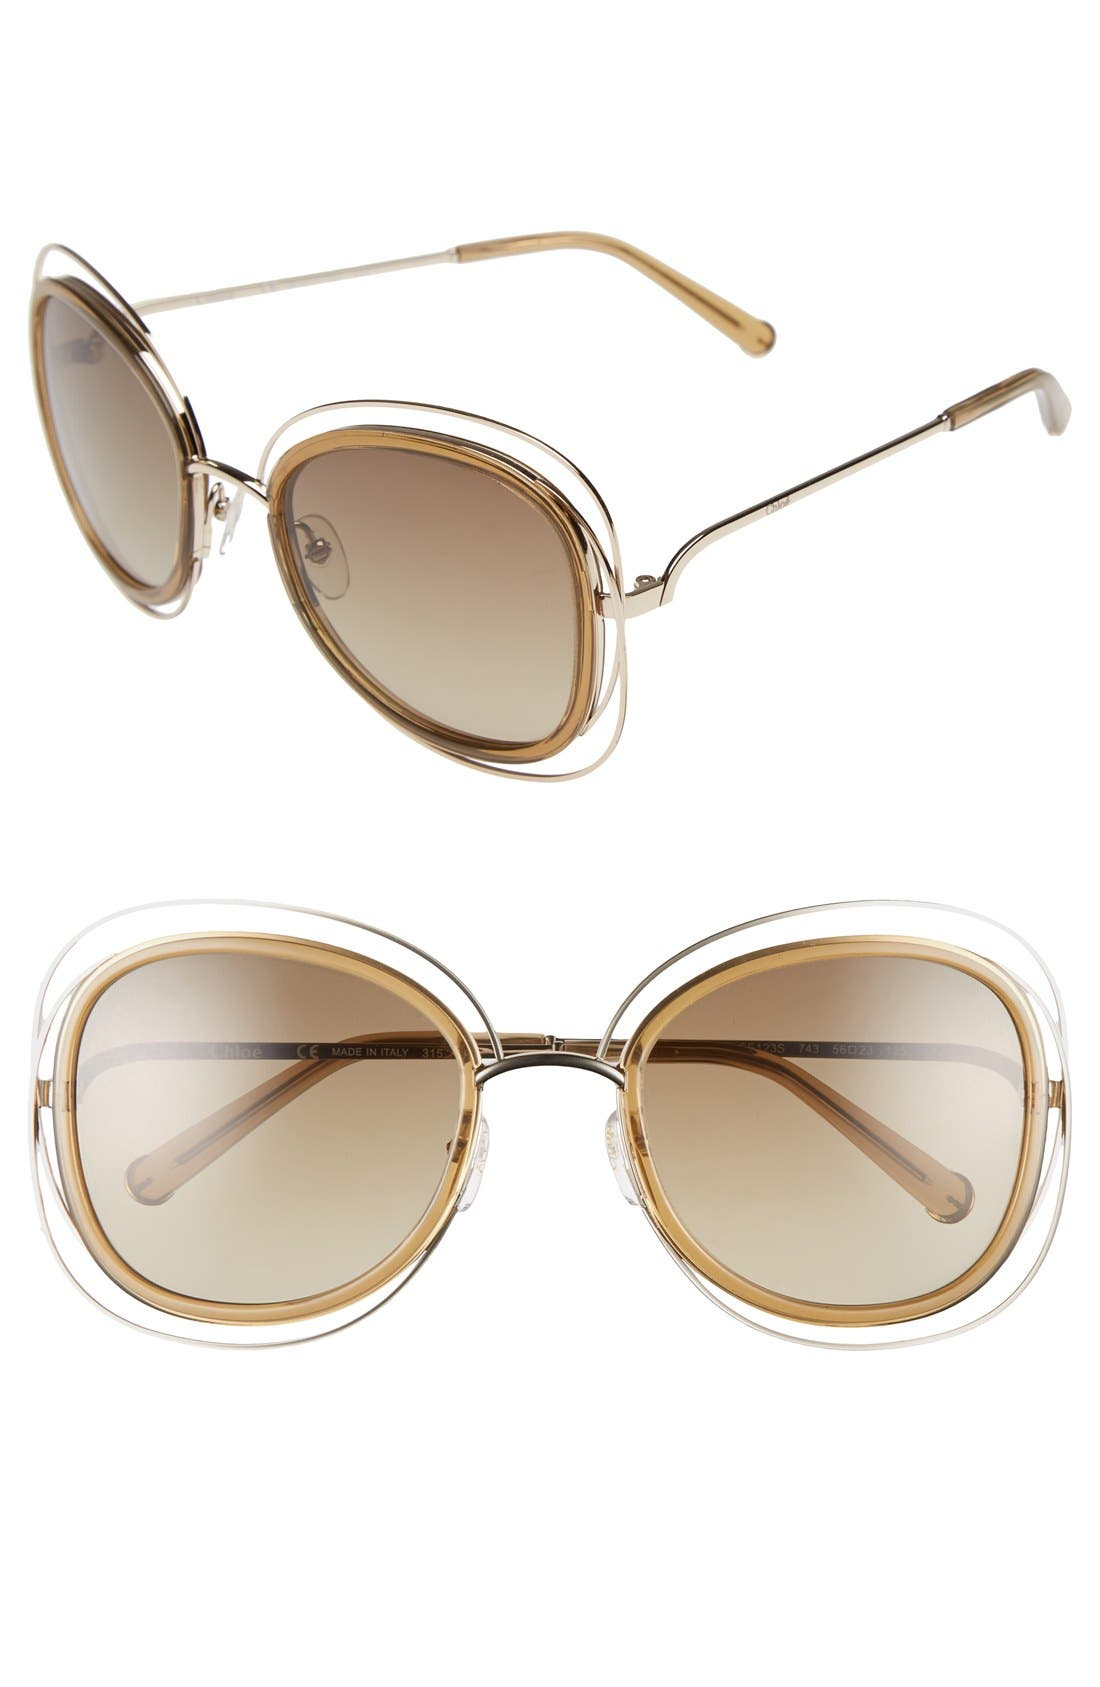 Alternate Image 1 Selected - Chloé 'Carlina' 56mm Gradient Sunglasses